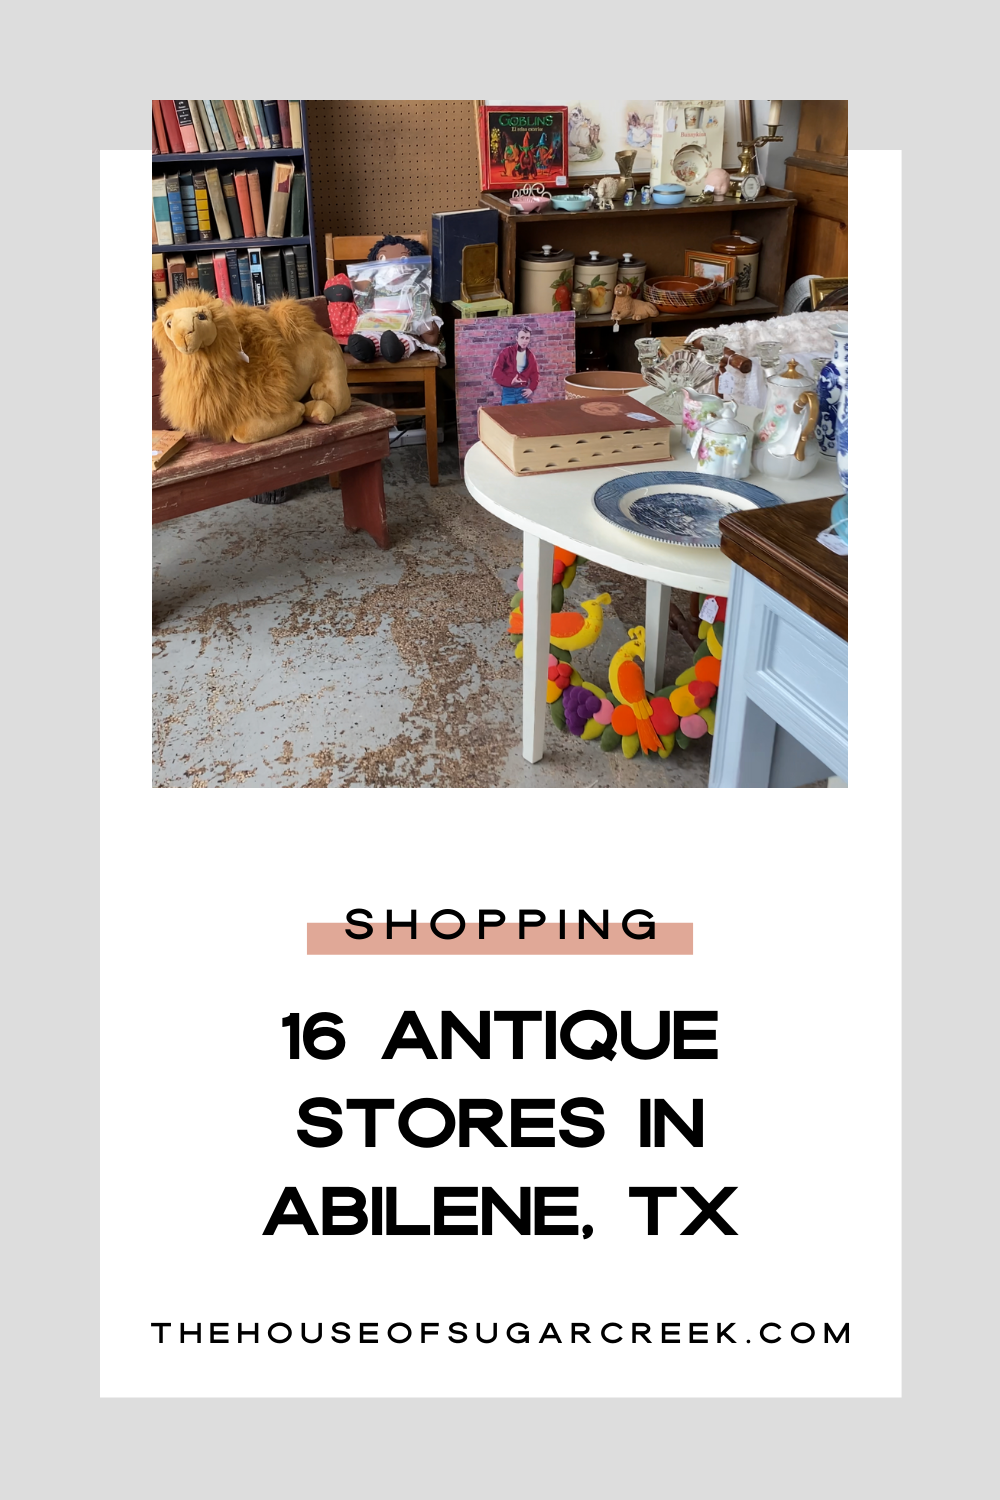 What Treasures Did I Find in Abilene, Texas? Find out in my latest YouTube video. Plus a great list of Antique Shops in Abilene!